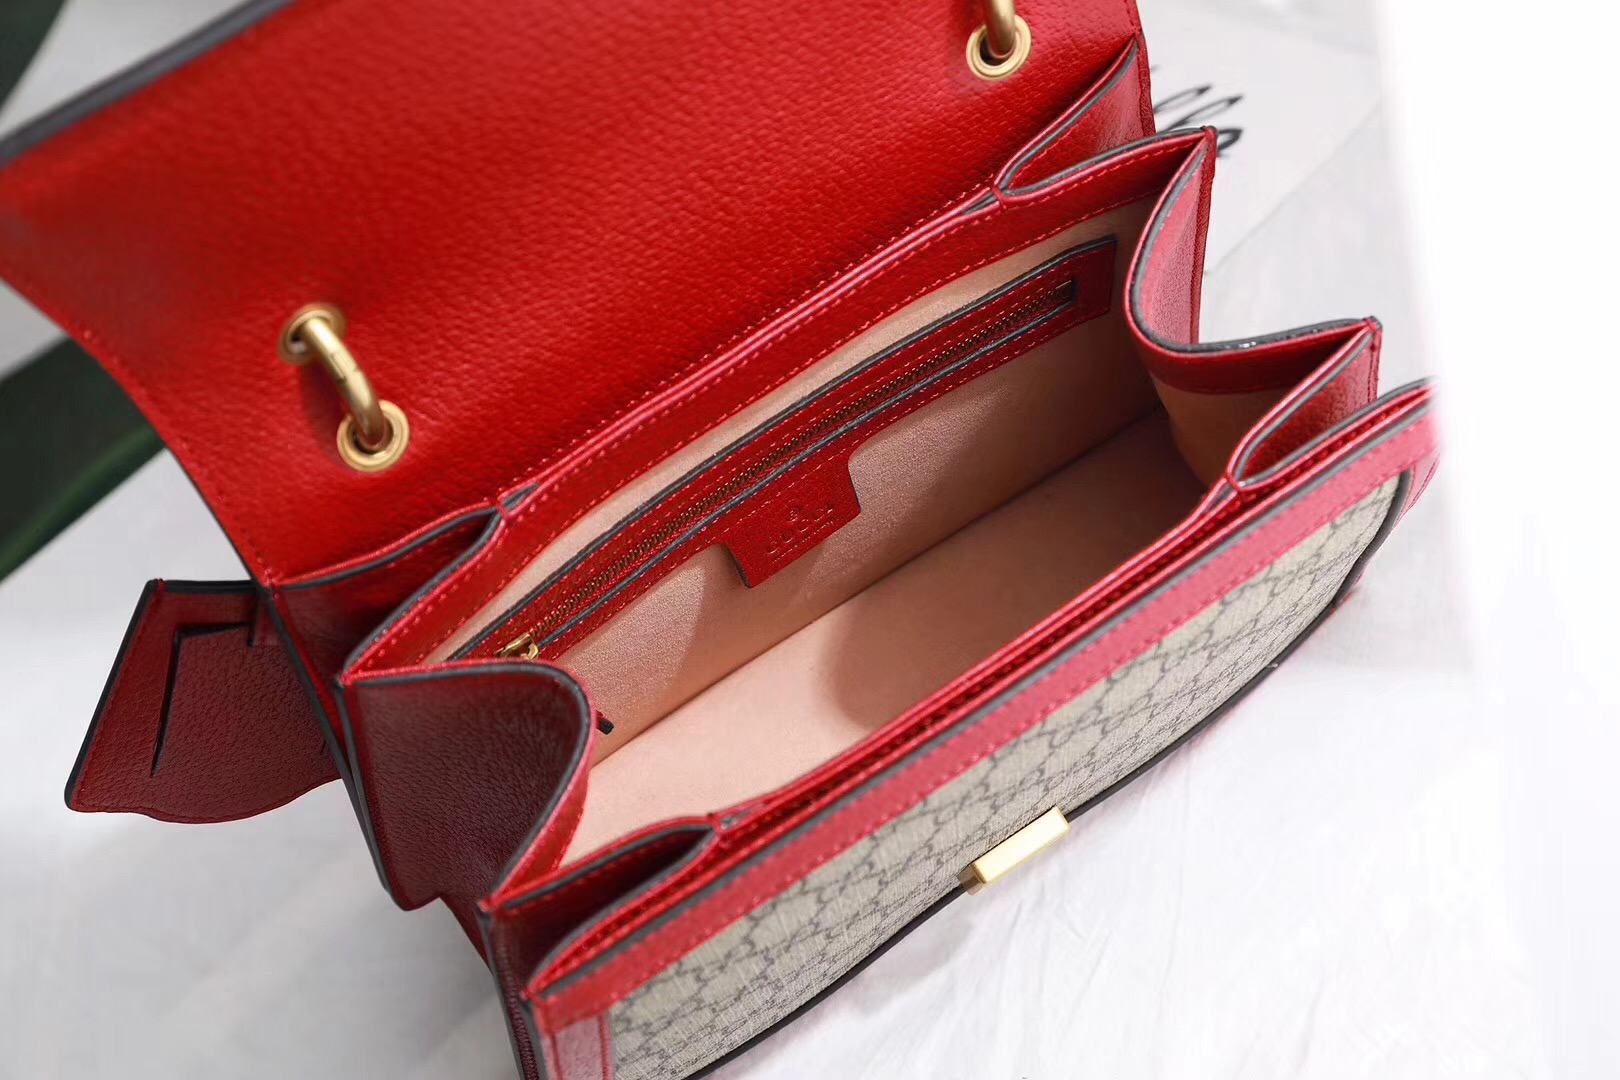 Gucci Queen Margaret GG small top handle bag 476541 red